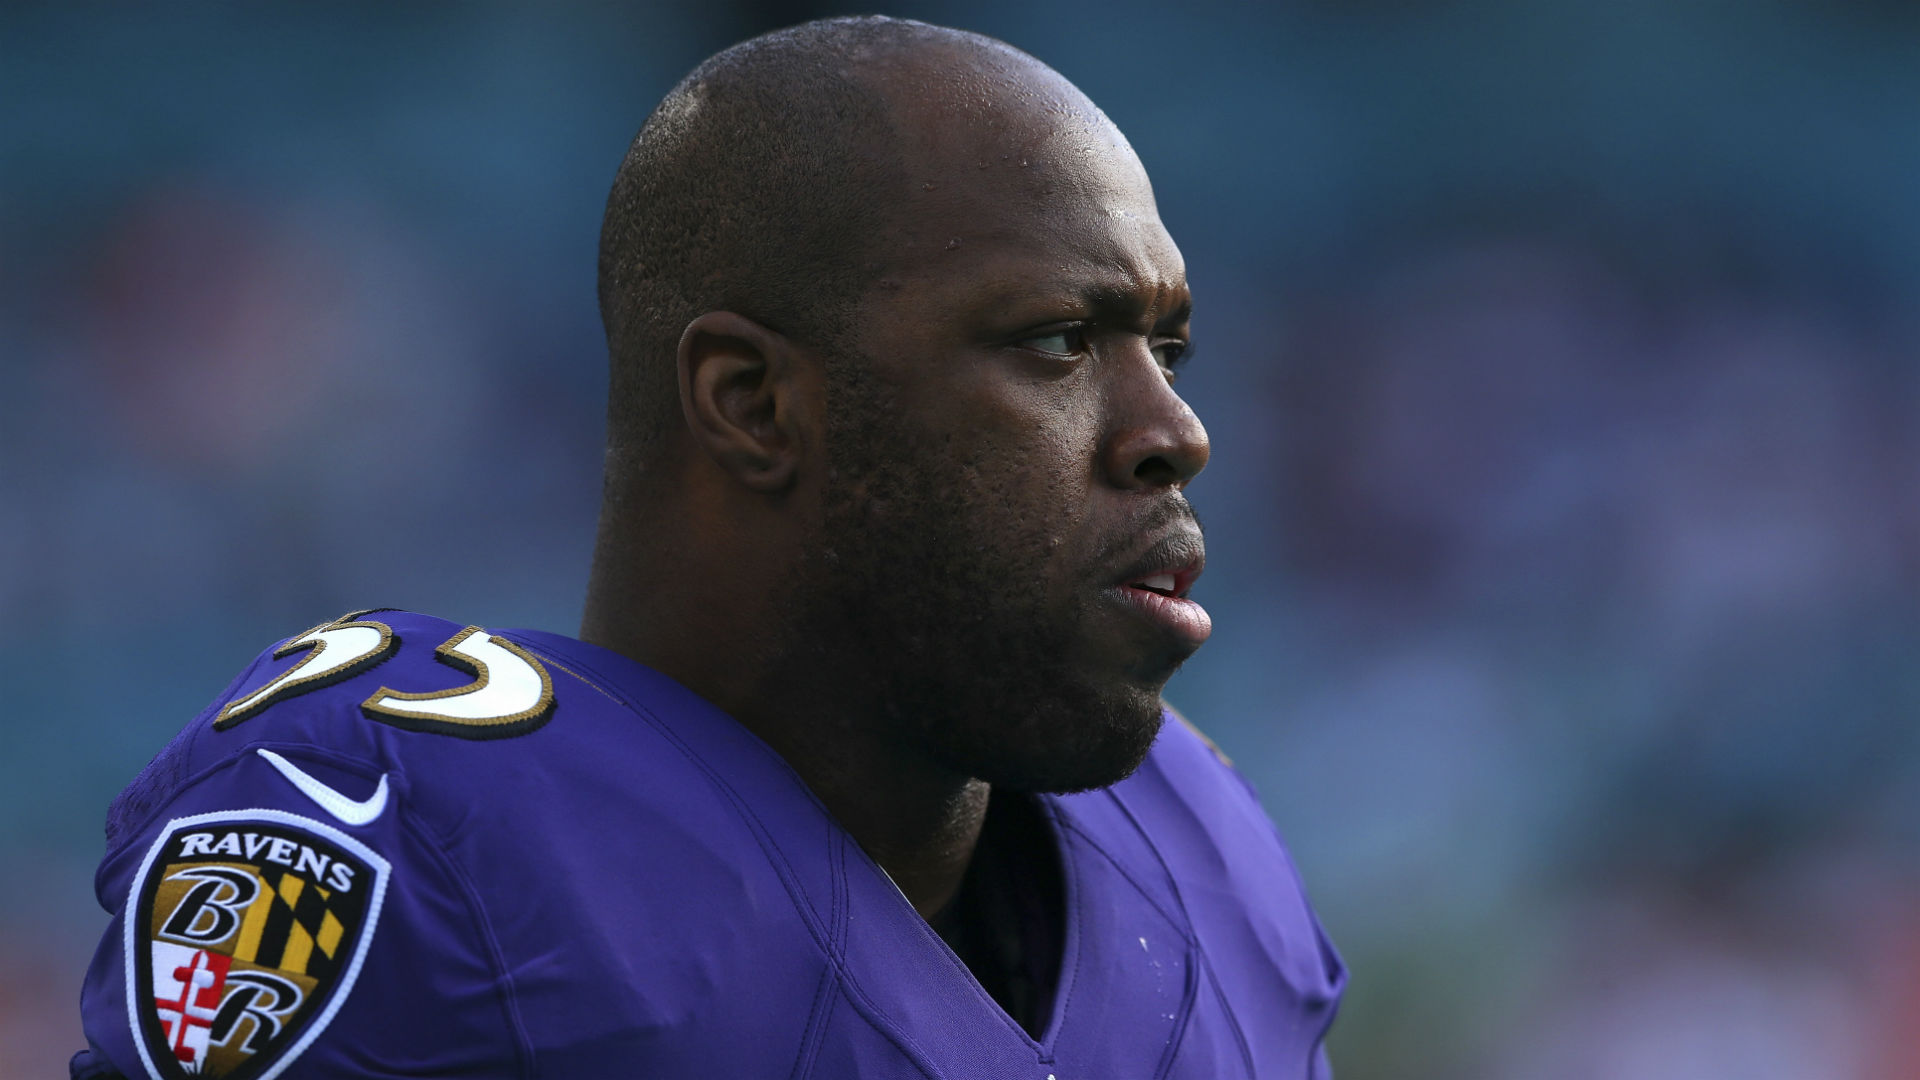 NFL free agency rumors: Terrell Suggs could hit market for first time in 2019